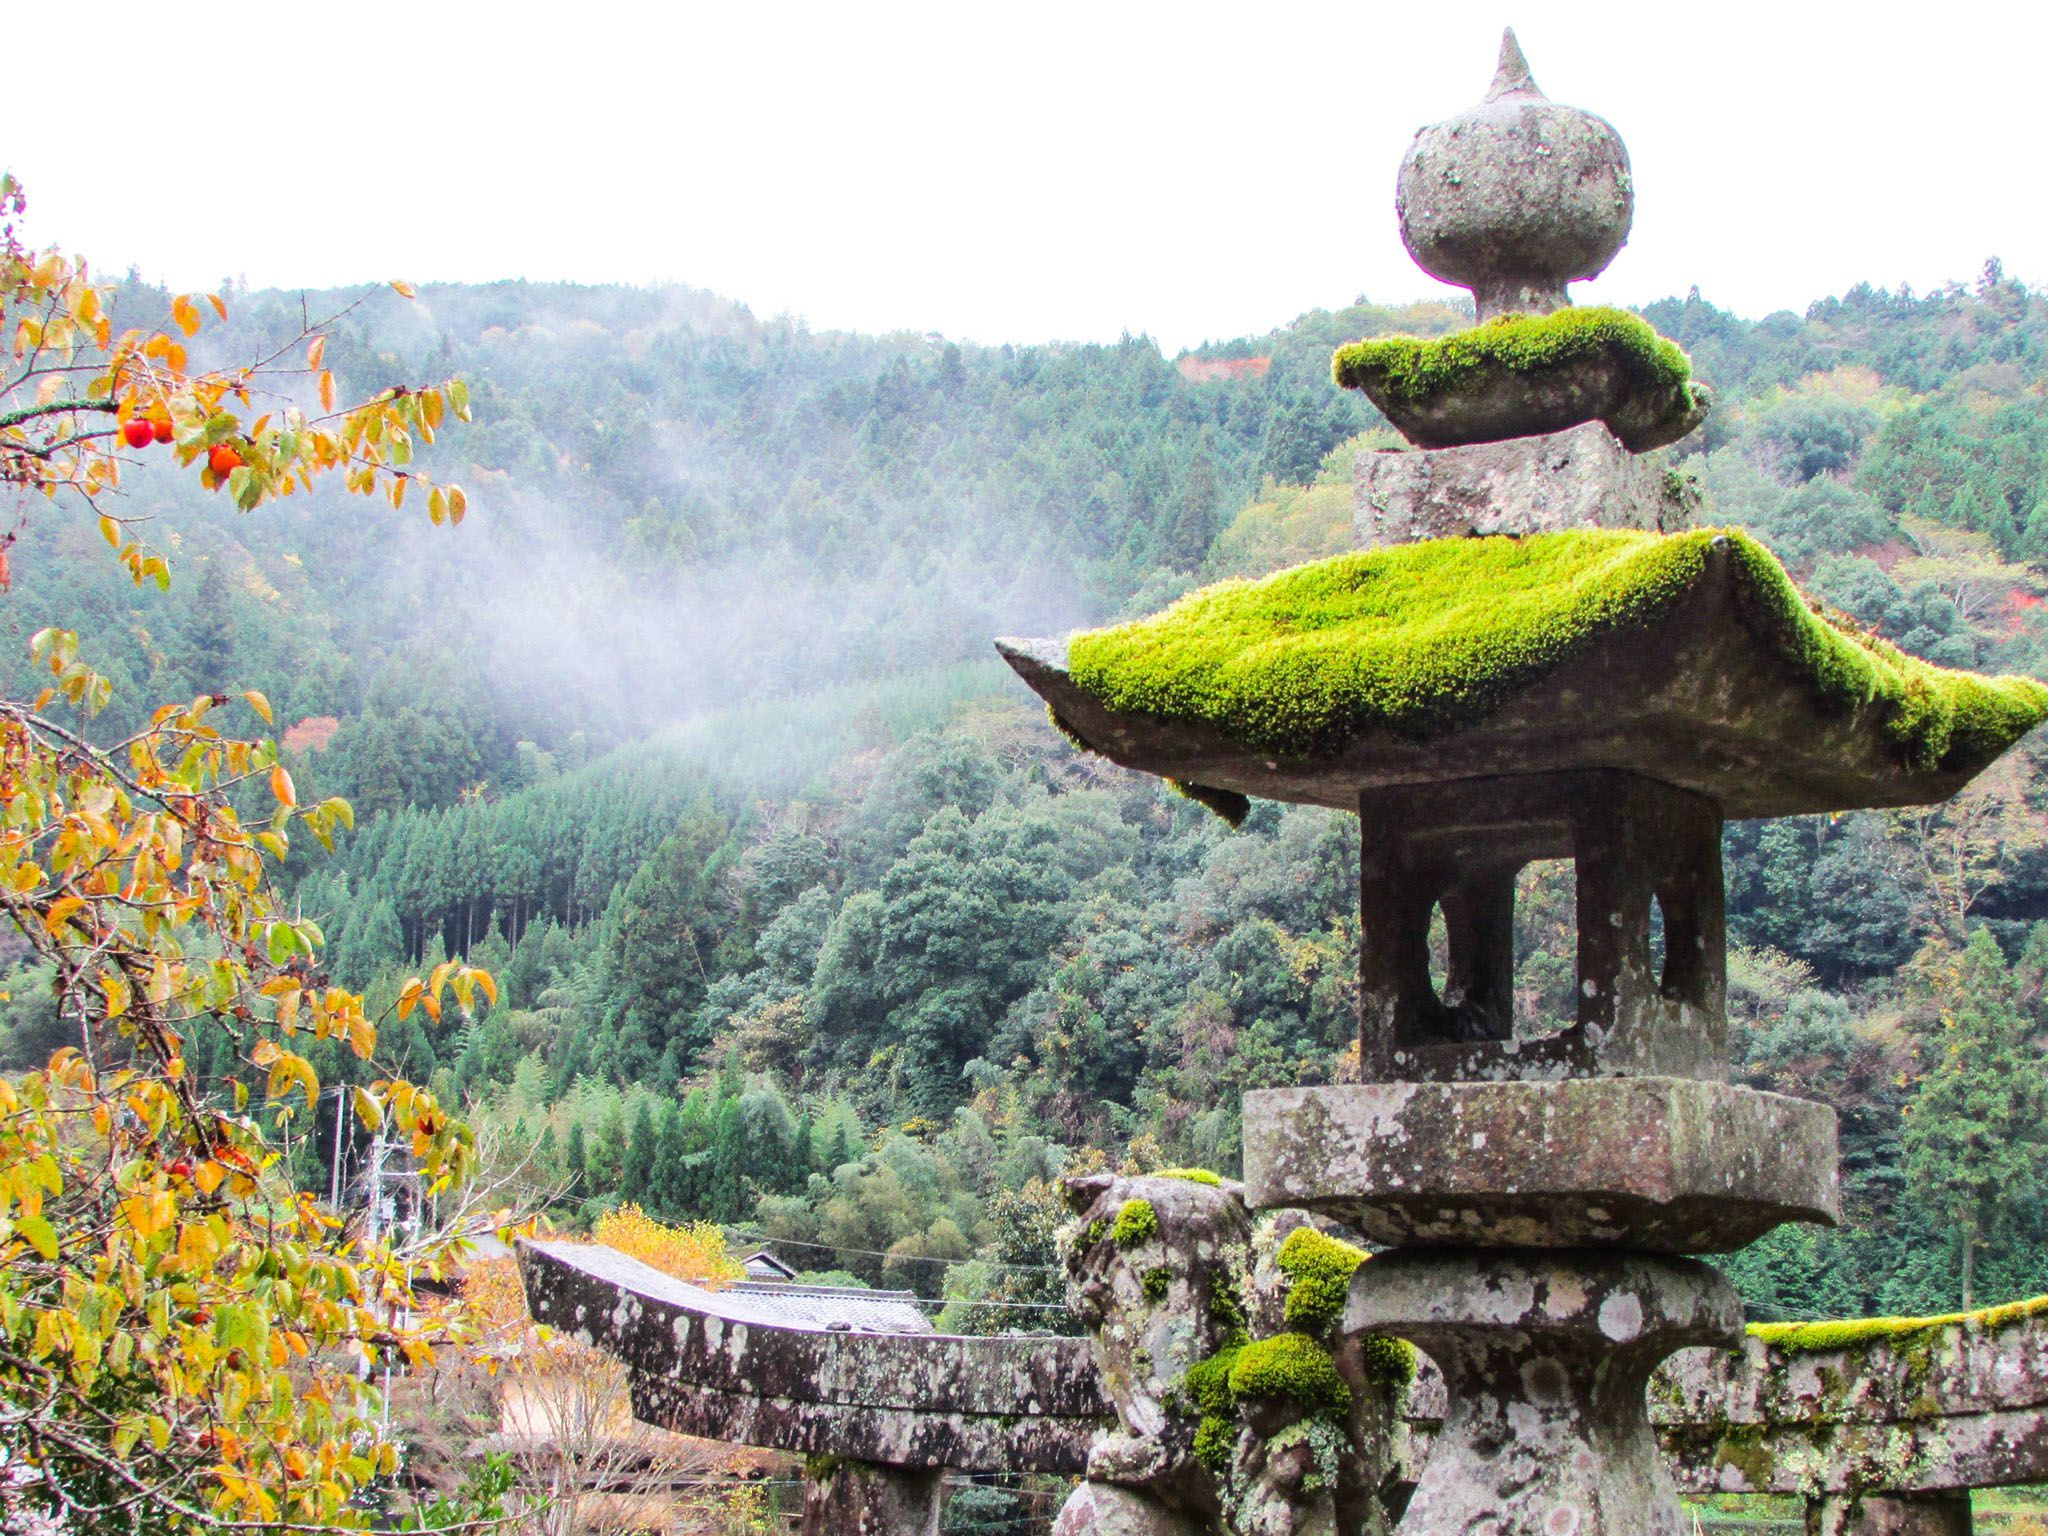 Matsuyama, Japan: Japanese ancient temple ruins with large forest in background. This image is... [Photo of the day - سپتامبر 2016]